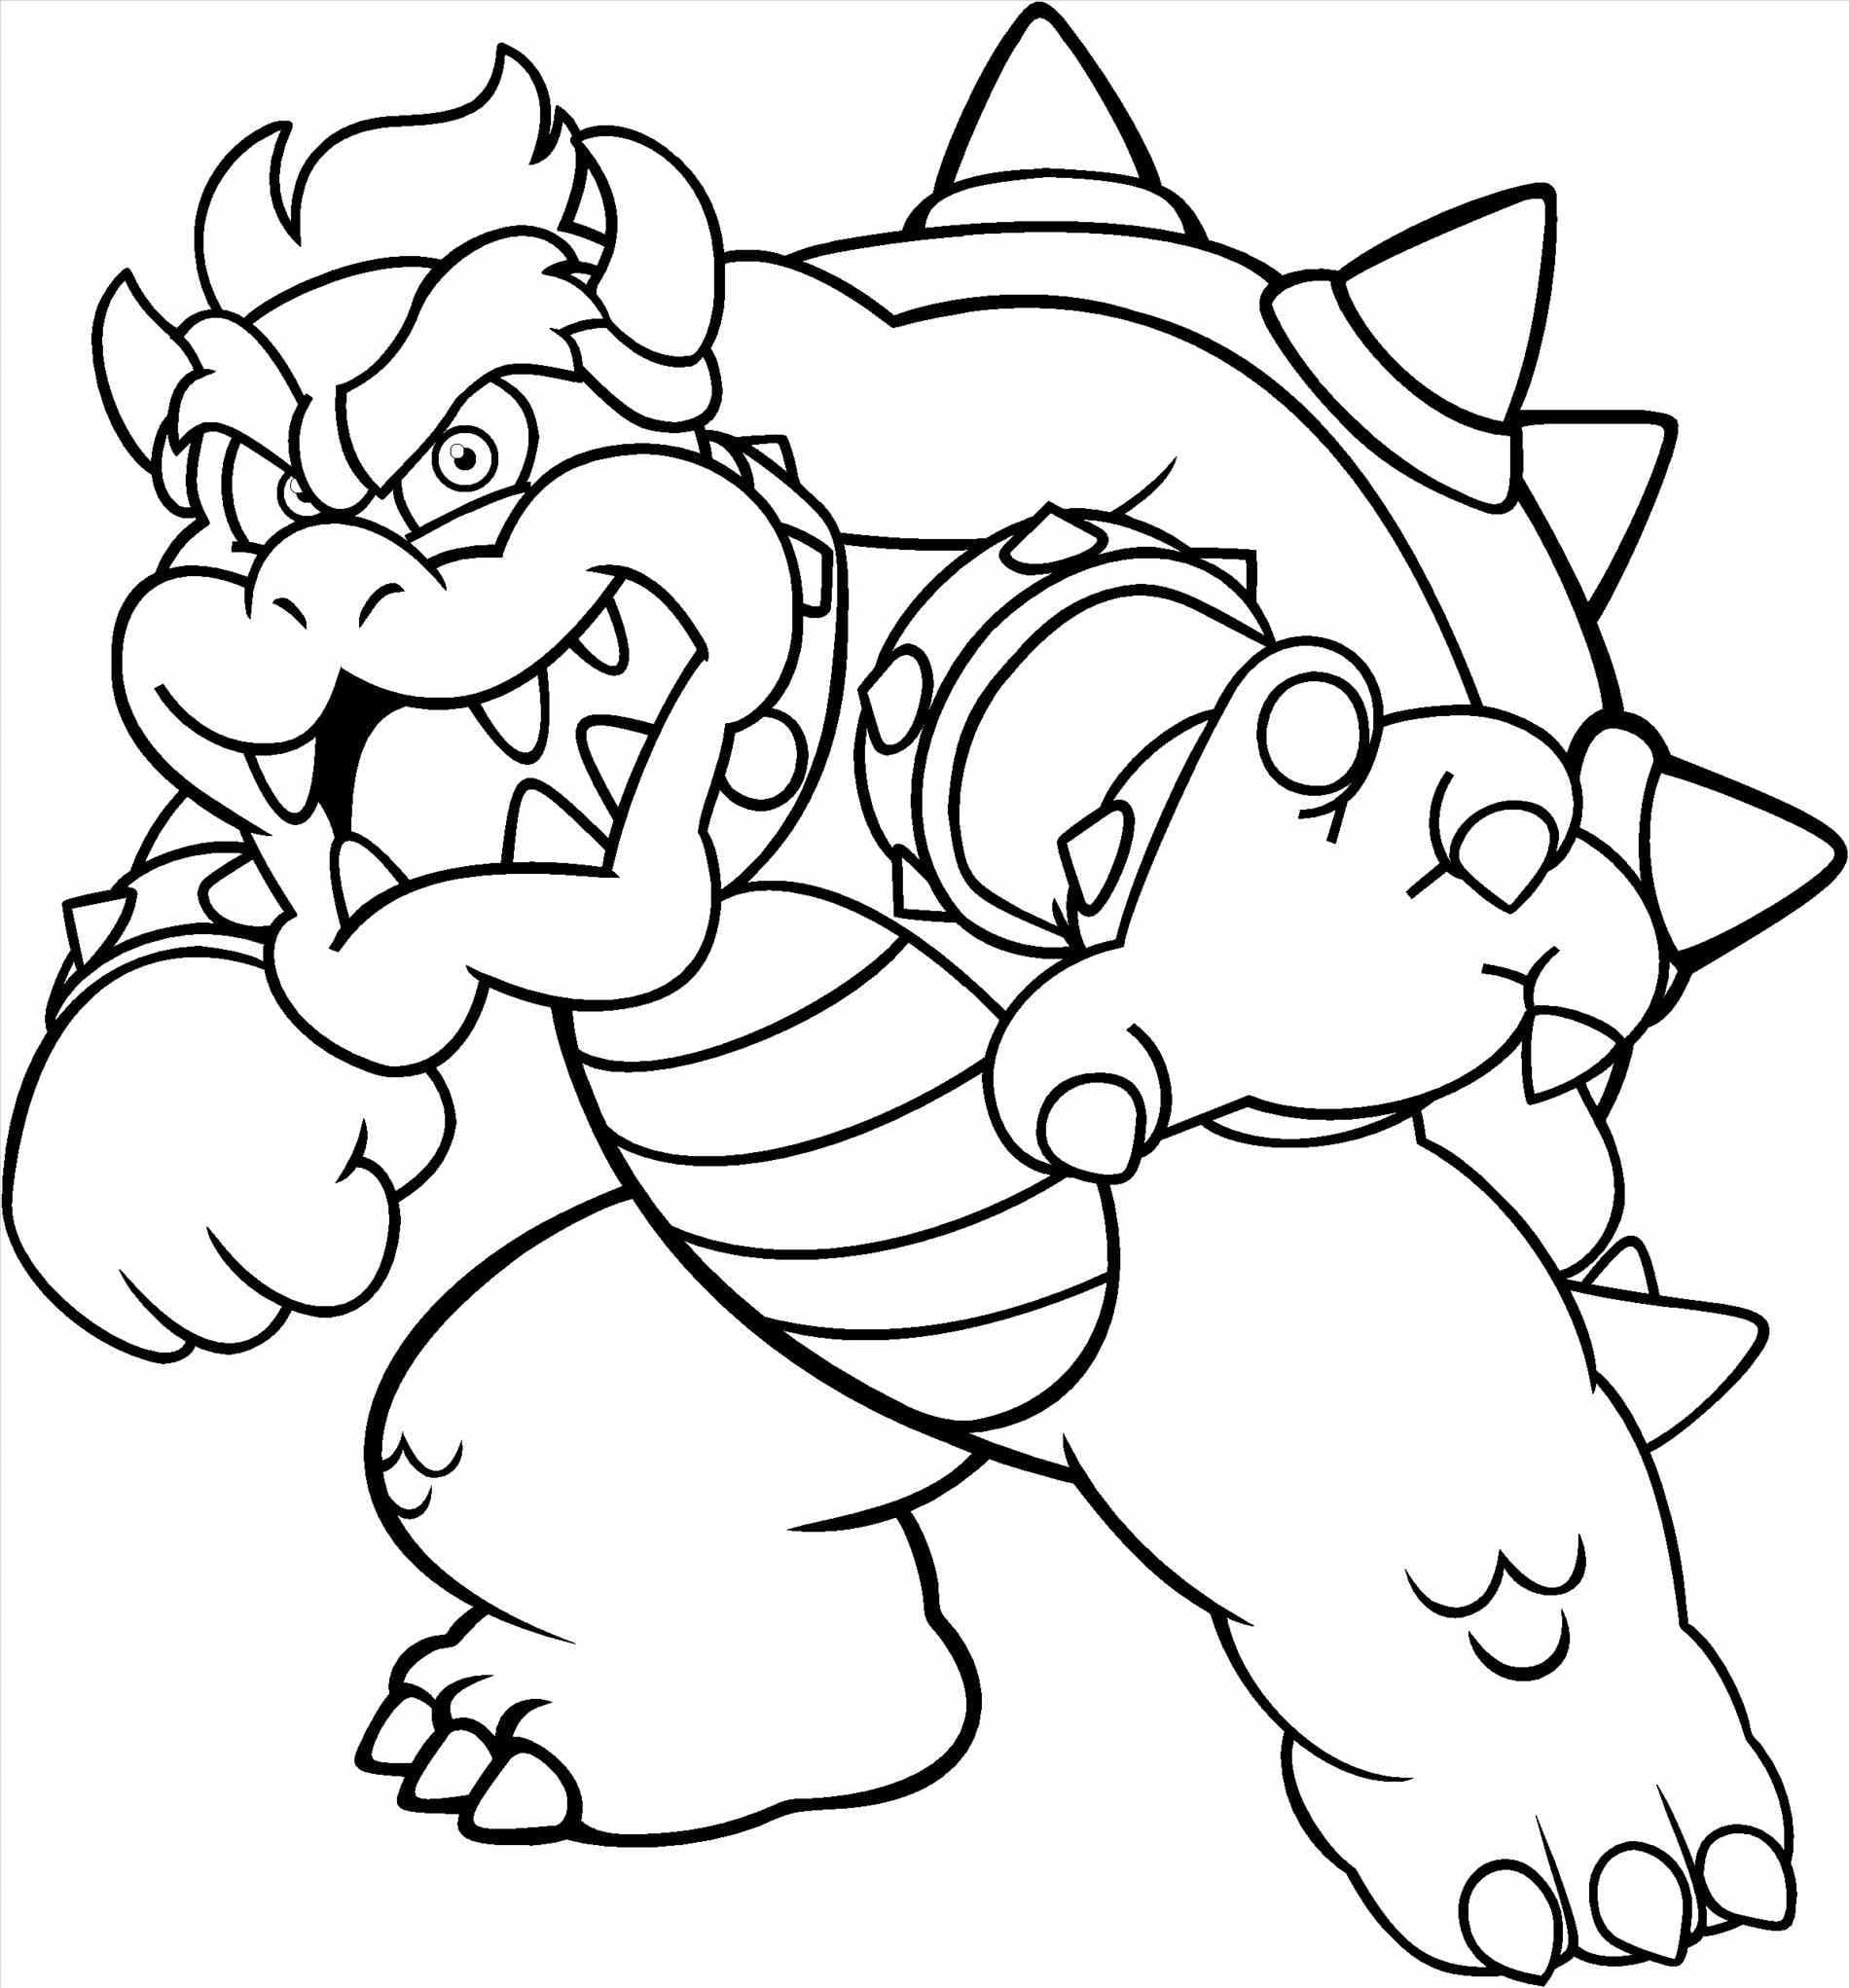 Bowser Coloring Pages Free At